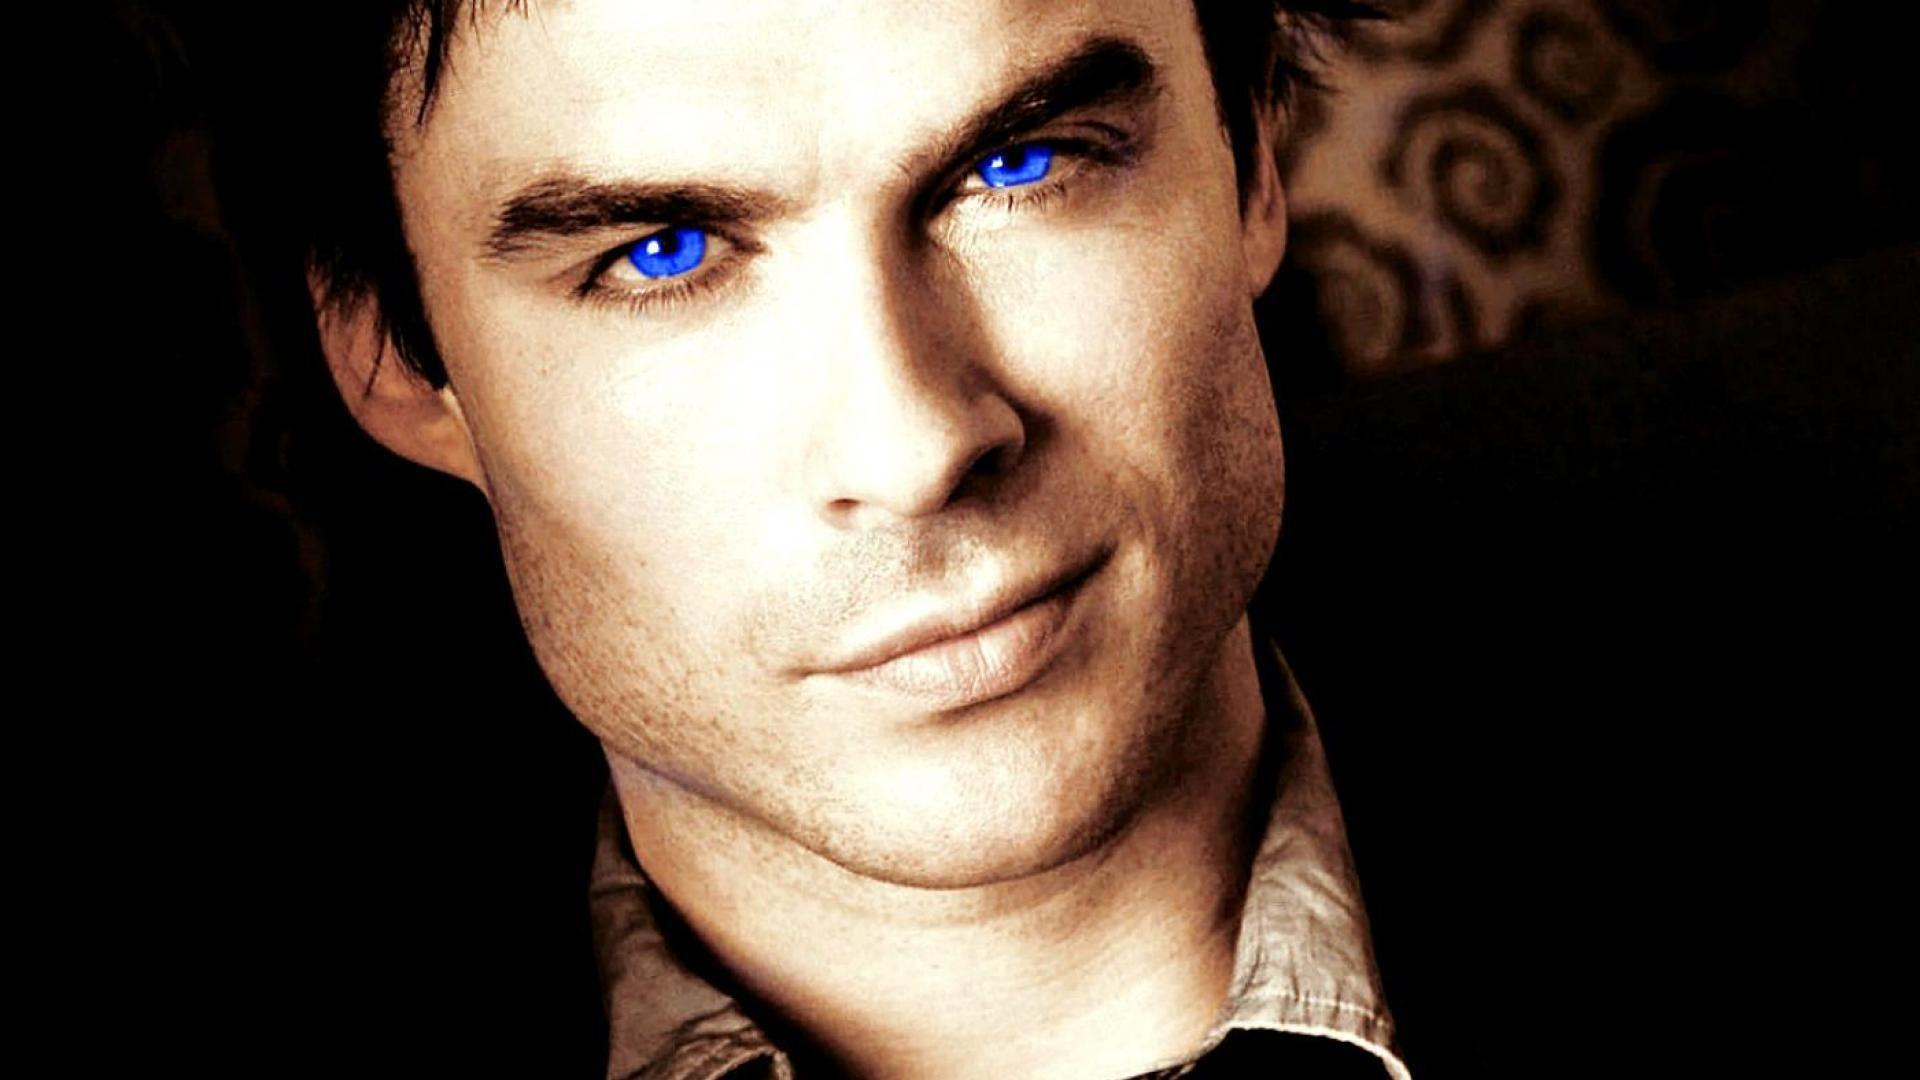 IAN SOMERHALDER AS DAMON WALLPAPER